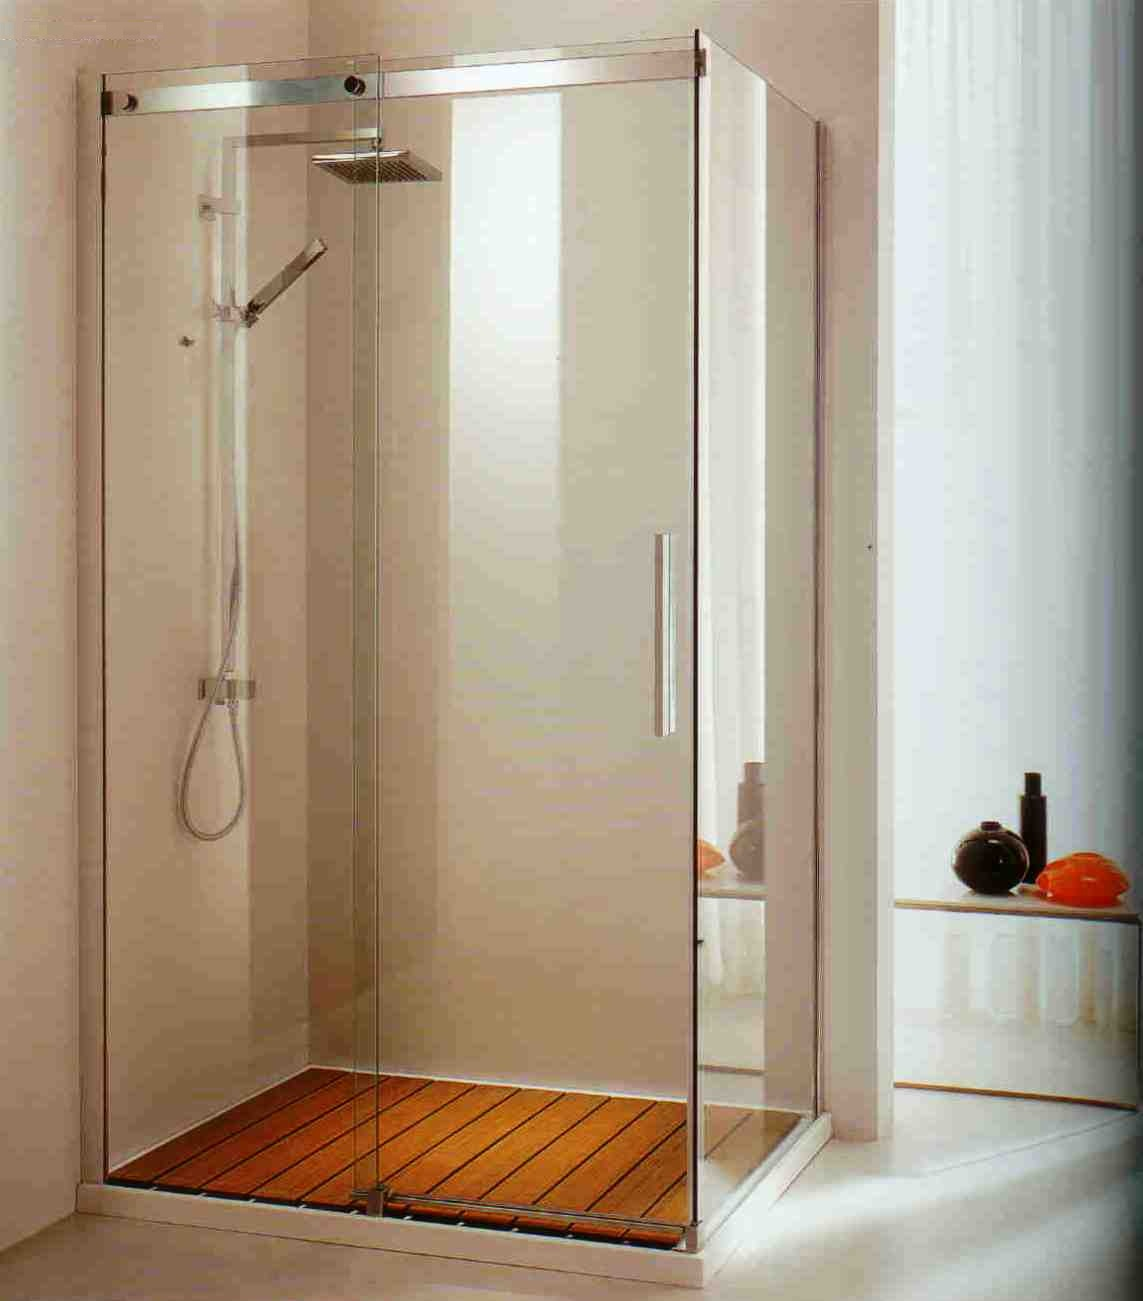 Buy Odele Shower Set 7201 At Bathselect. Lowest Price Guaranteed